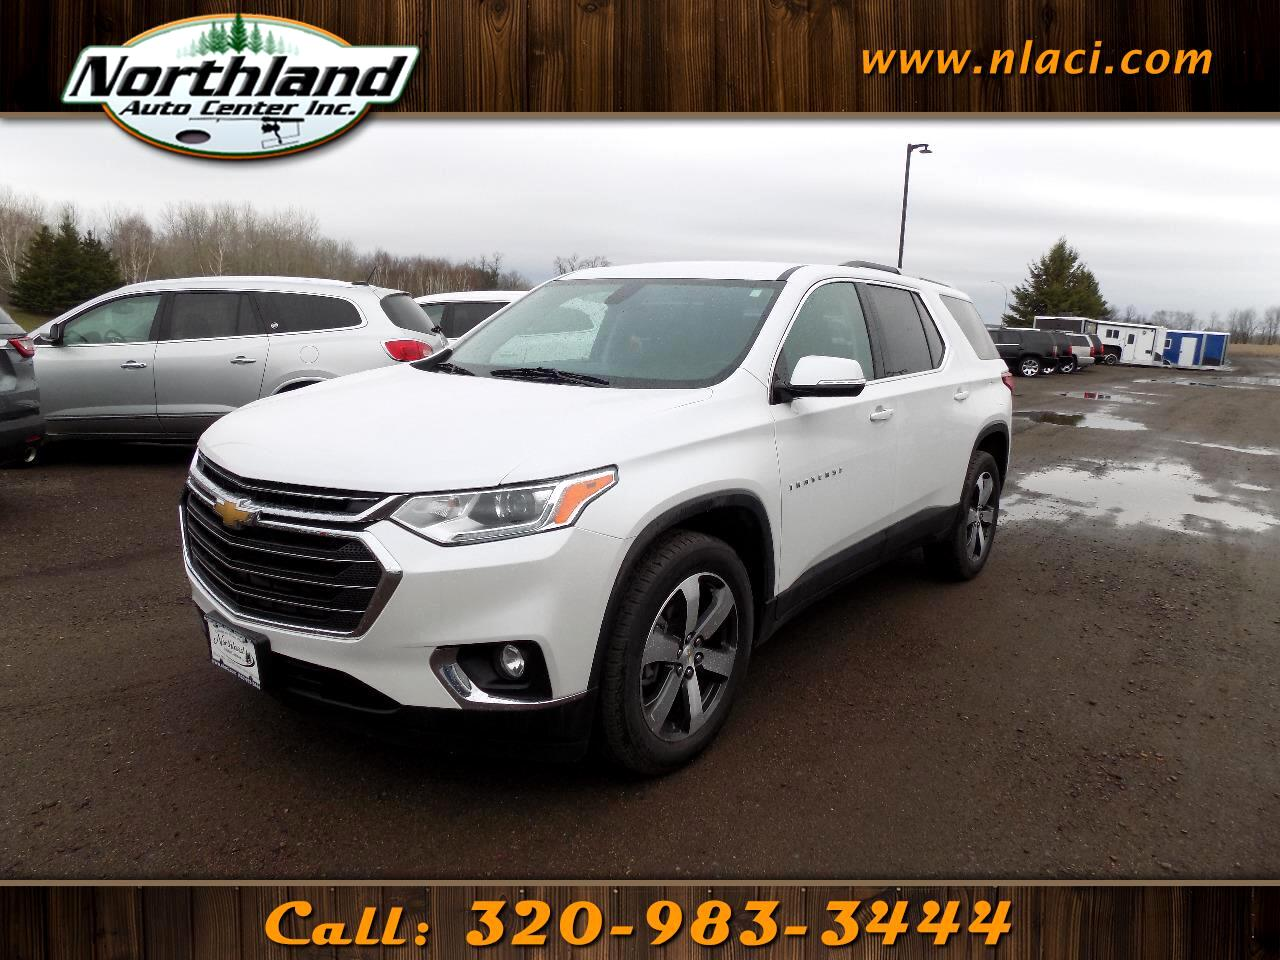 2018 Chevrolet Traverse FWD 4dr LT Leather w/3LT